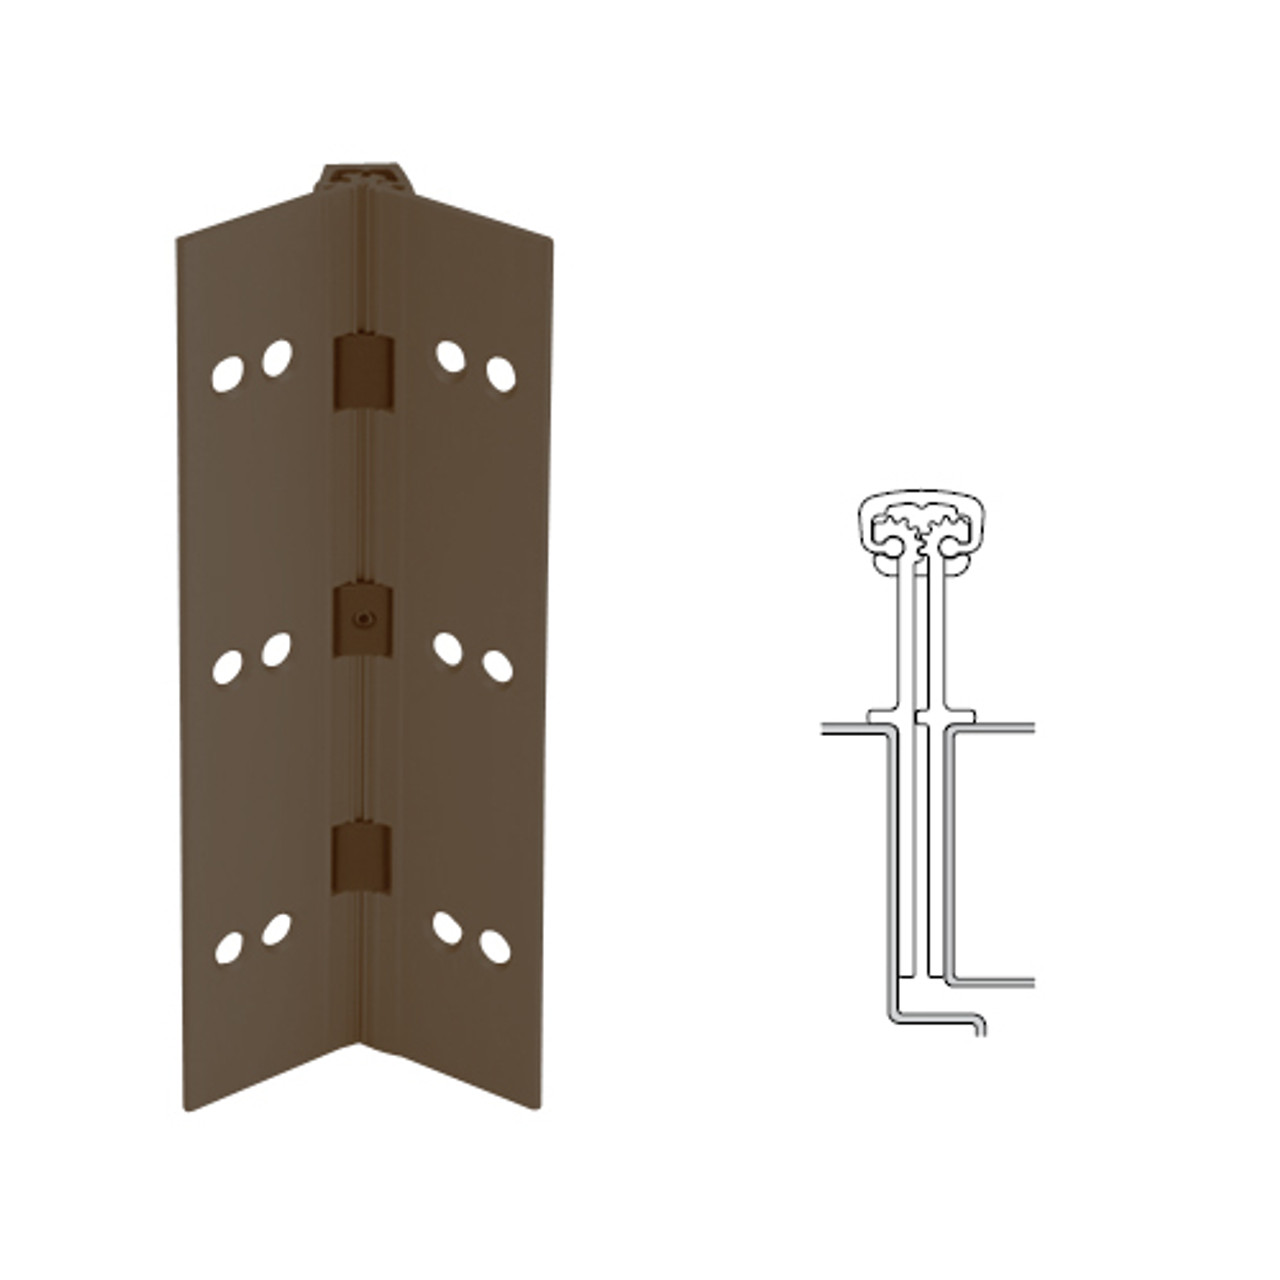 040XY-313AN-120-TEKWD IVES Full Mortise Continuous Geared Hinges with Wood Screws in Dark Bronze Anodized